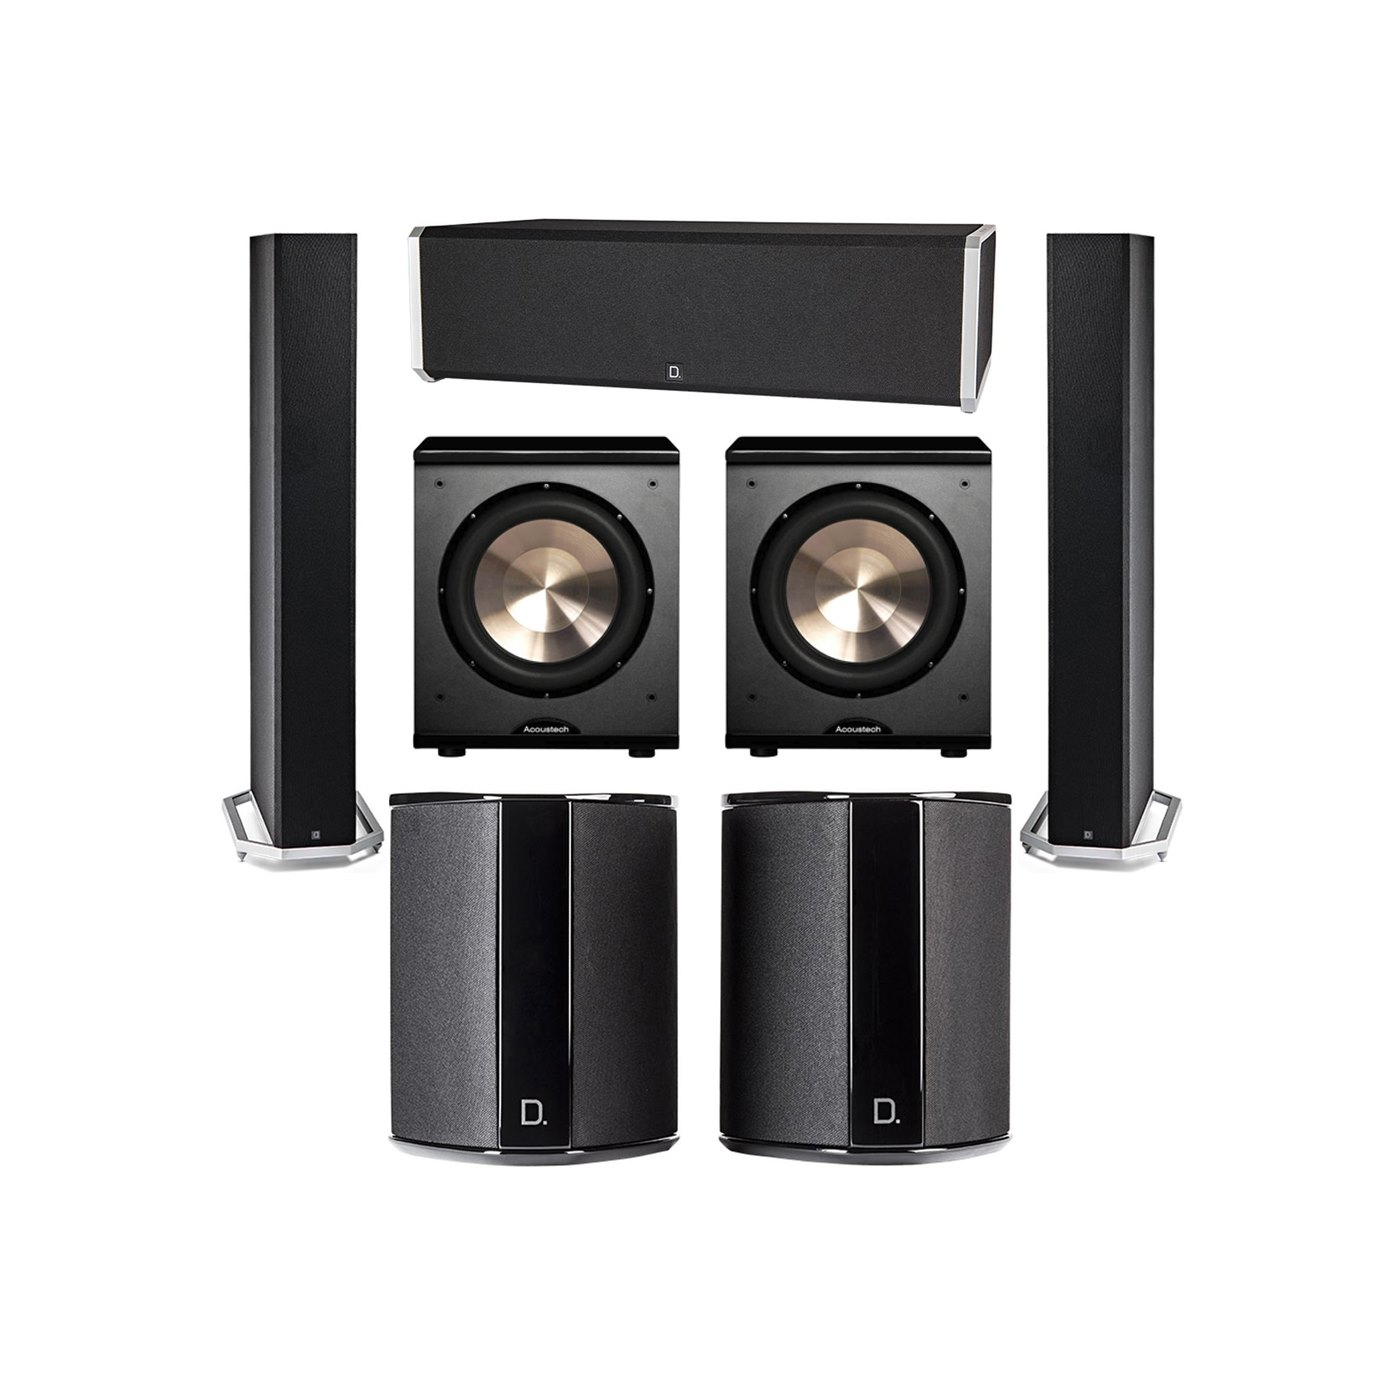 Definitive Technology 5.2 System with 2 BP9060 Tower Speakers, 1 CS9040 Center Channel Speaker, 2 SR9040 Surround Speaker, 2 BIC PL-200 Subwoofer